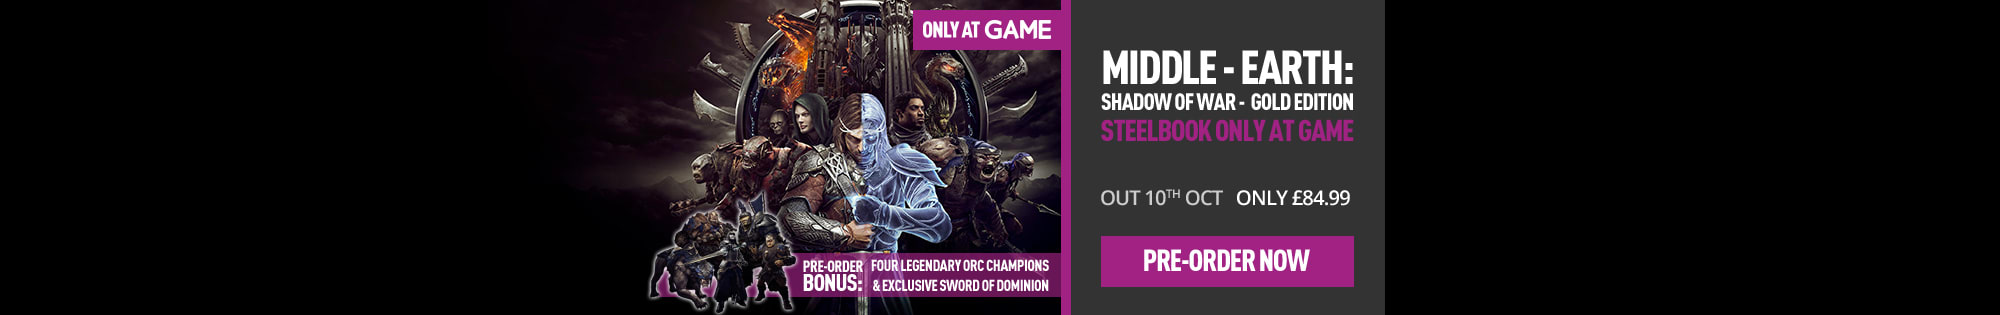 Middle Earth: Shadow of War - Gold Edition - Homepage banner